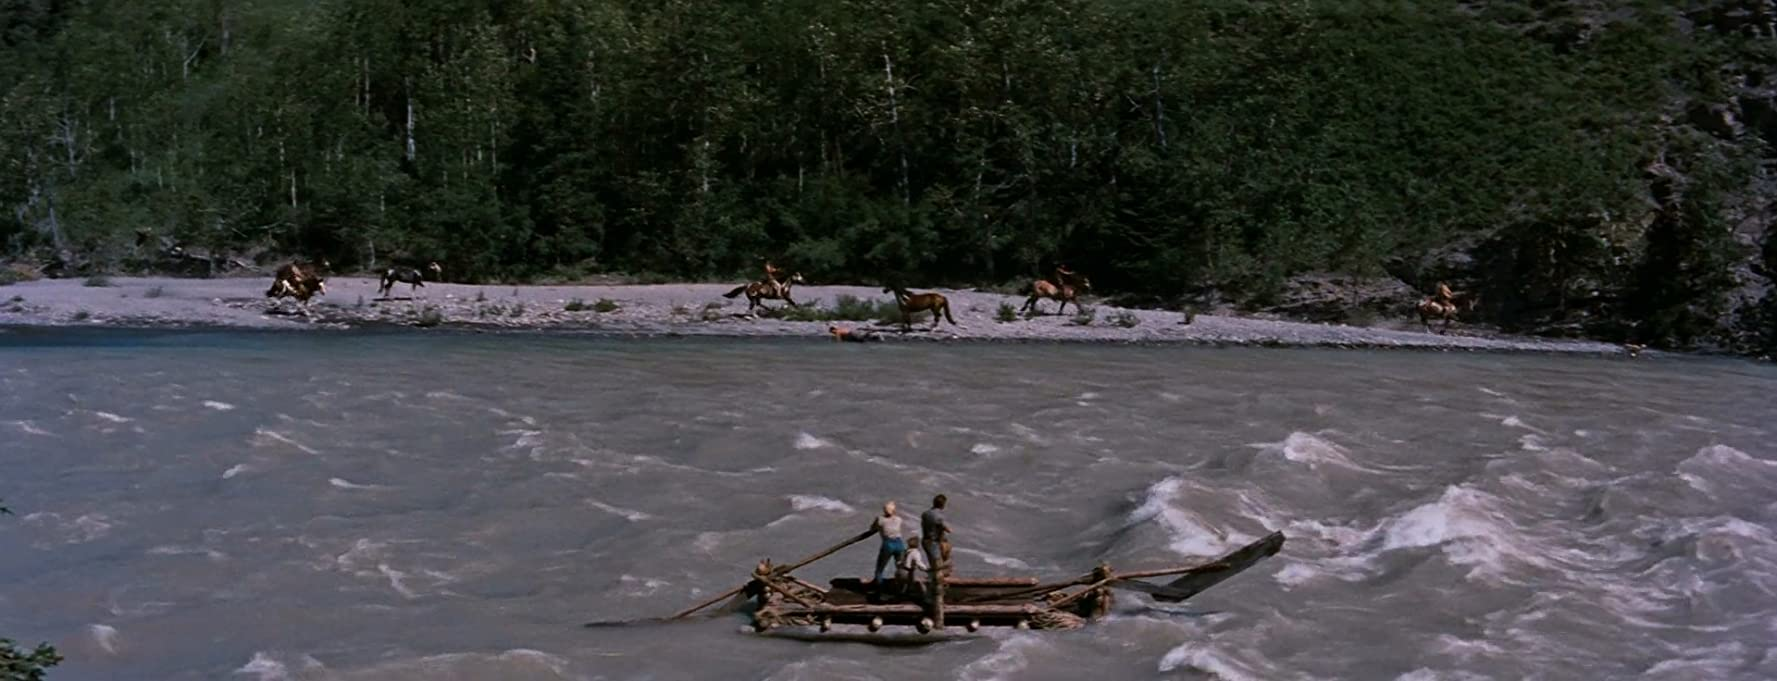 Robert Mitchum, Marilyn Monroe, and Tommy Rettig in River of No Return (1954)